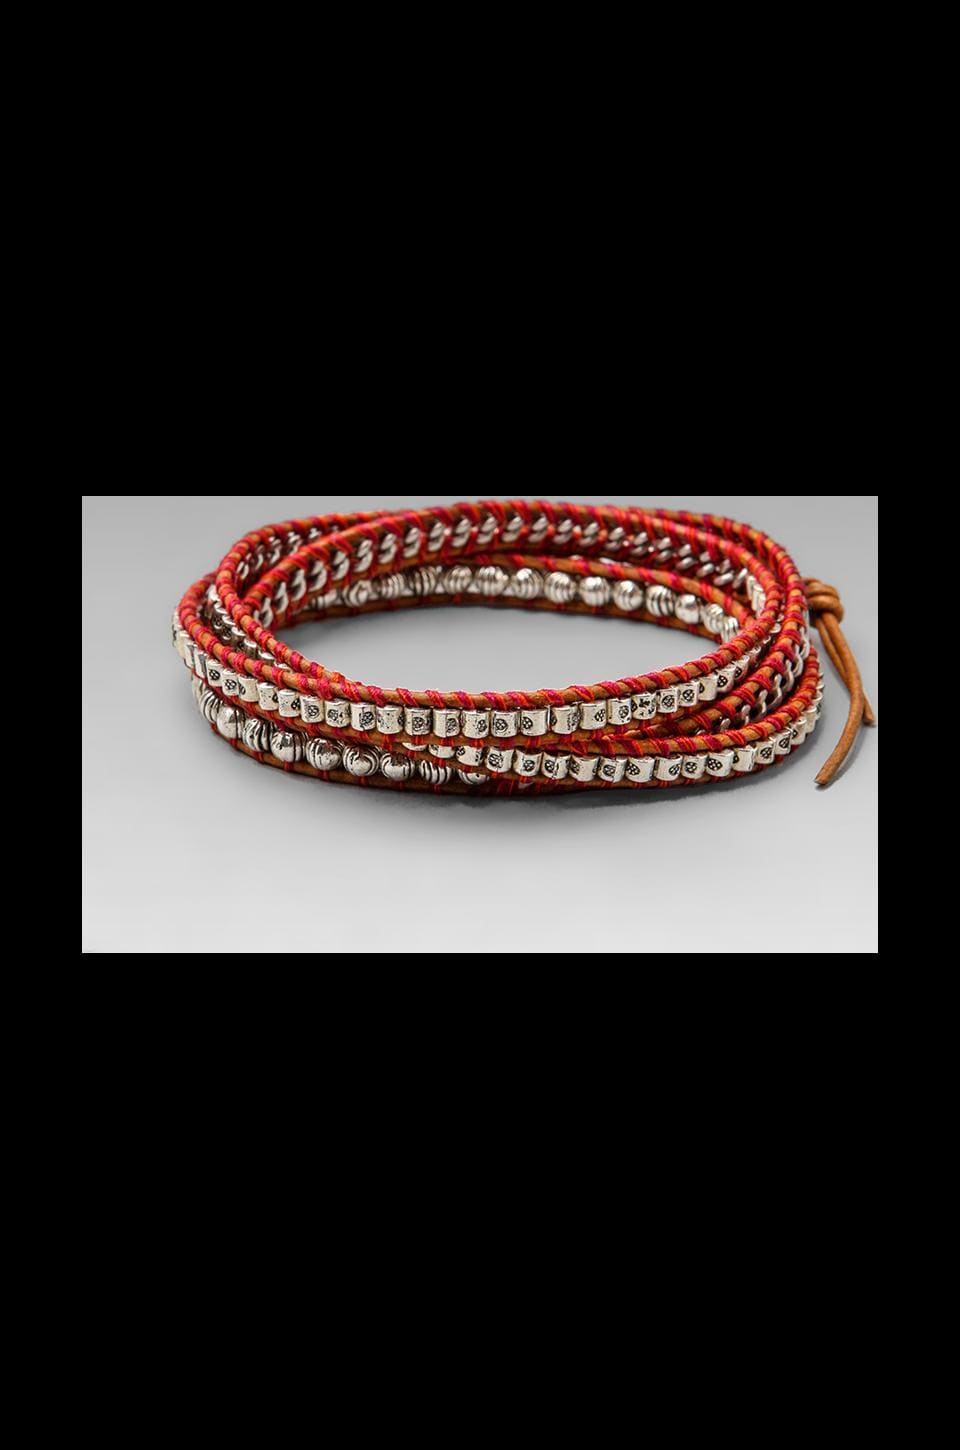 CHAN LUU Threaded Wrap Bracelet in Red Mix/Natural Brown